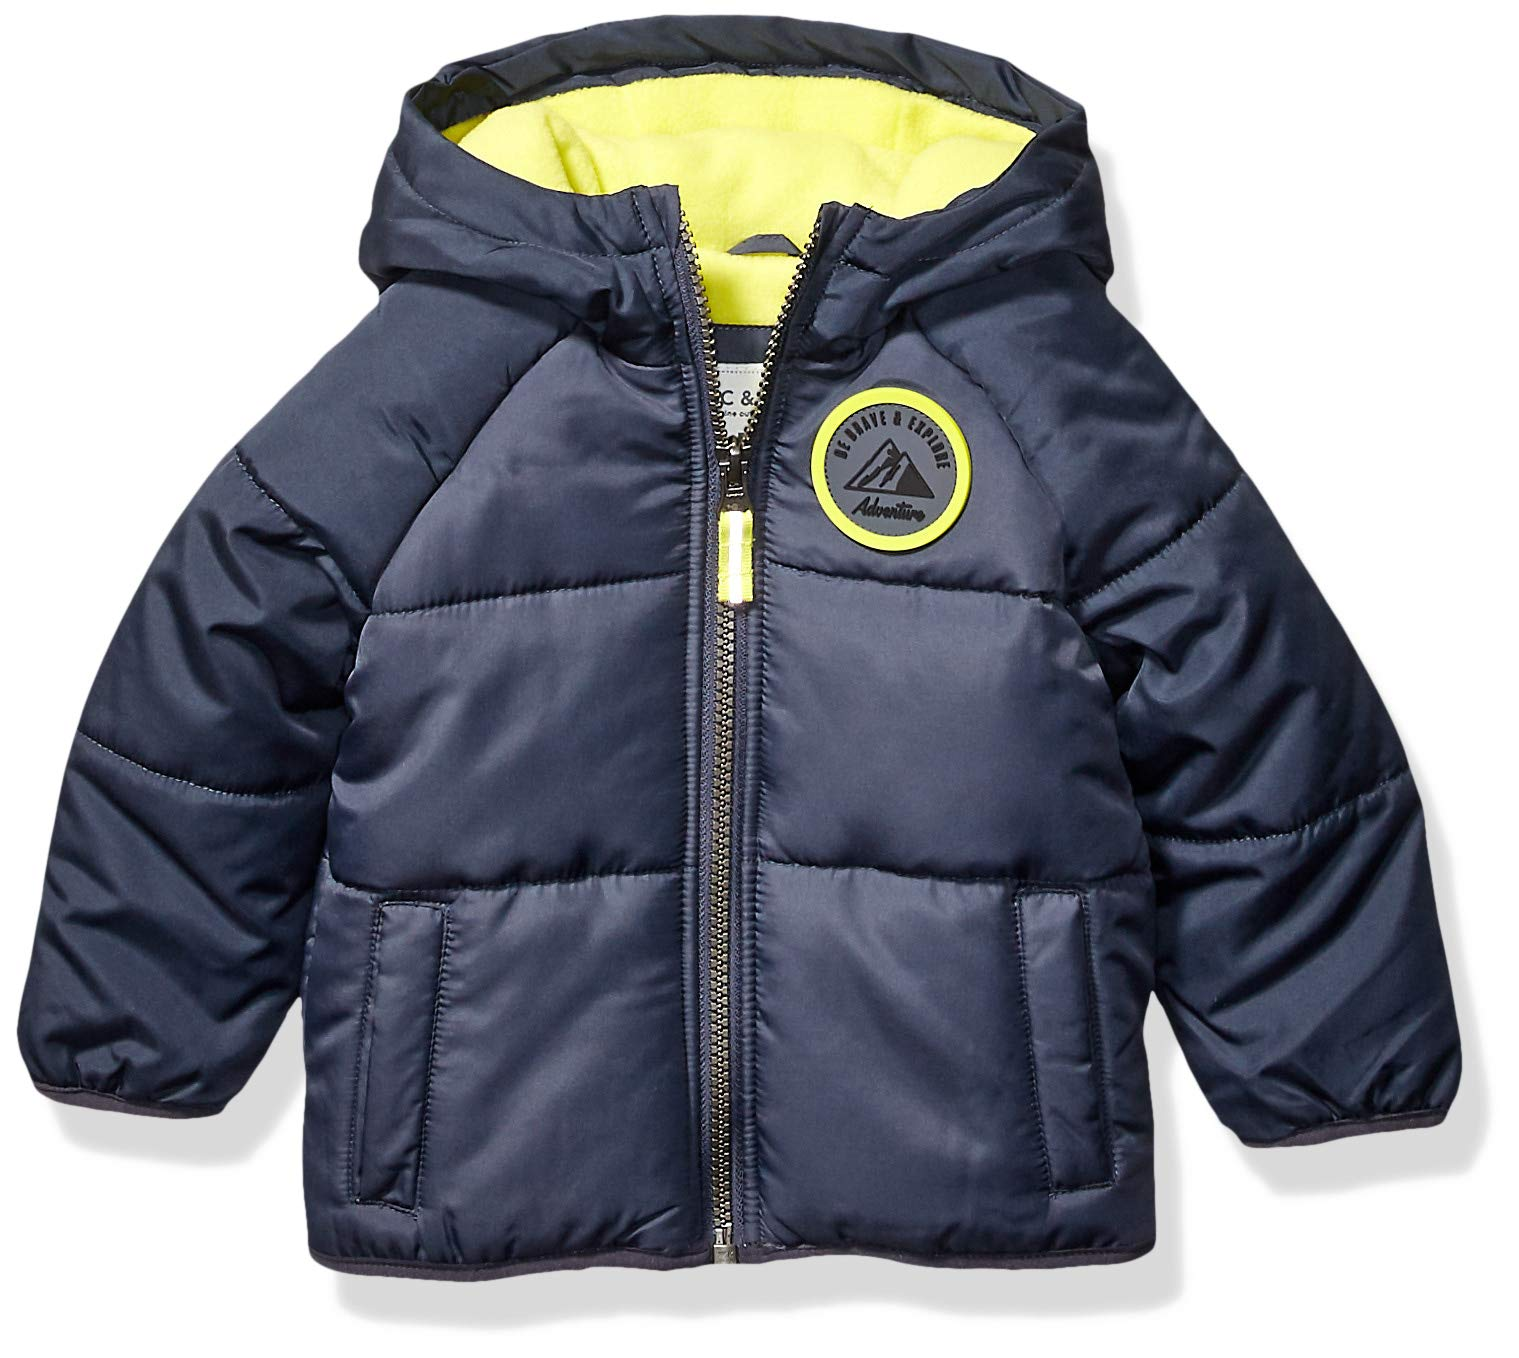 Carter's Baby Boys Adventure Bubble Jacket, Armour Gray/Azul/Radioactive, 18 Months by Carter's